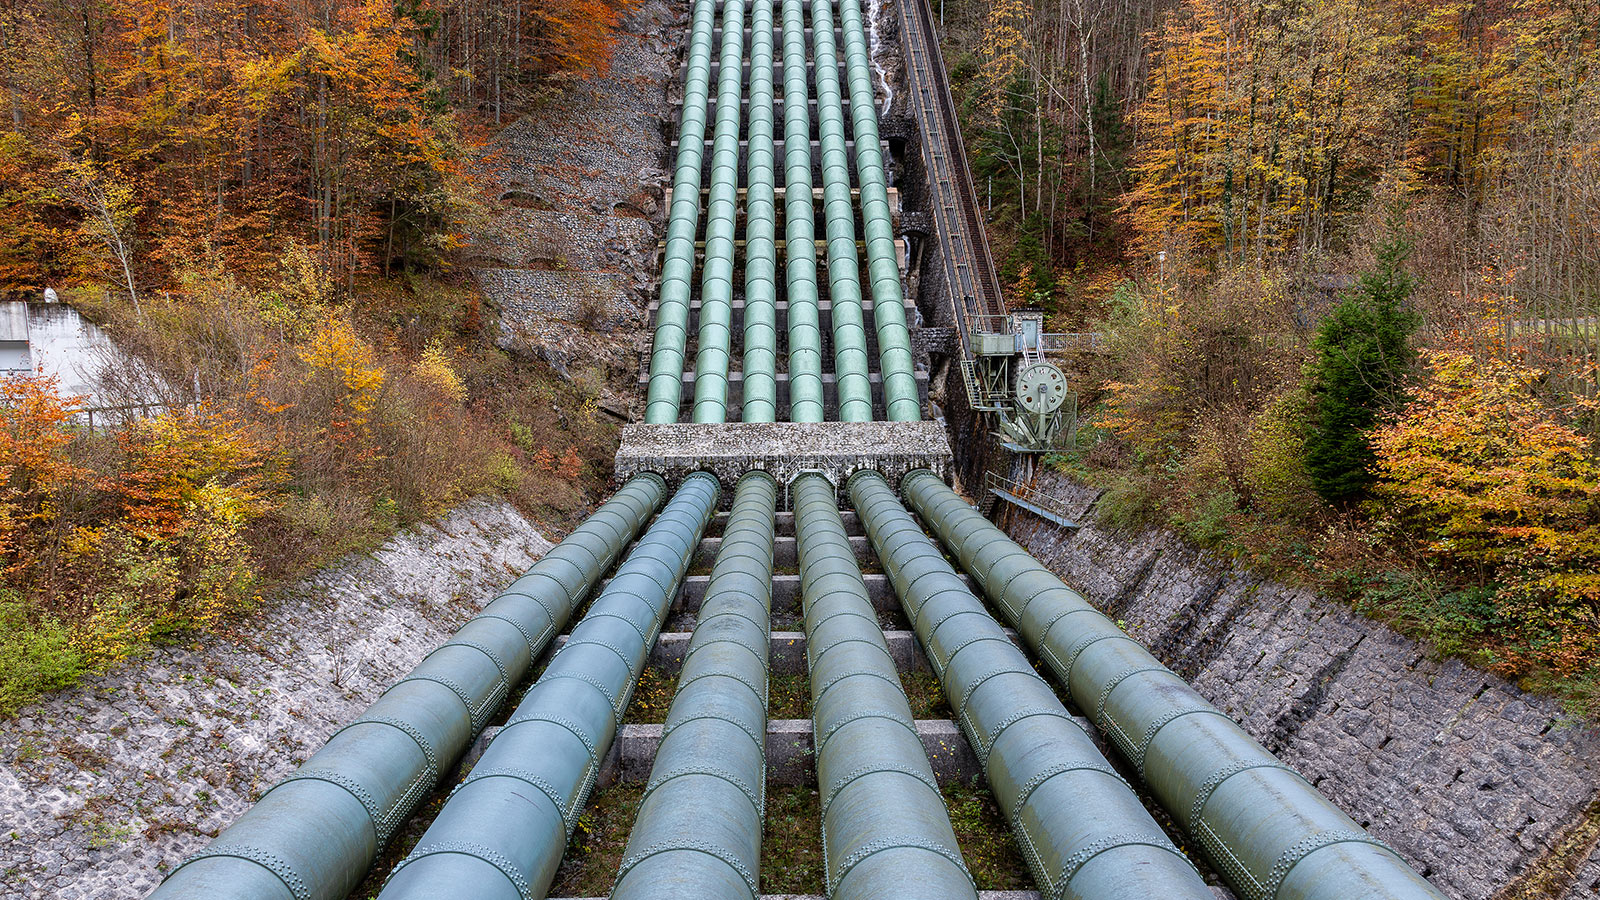 Canada's Pipelines: Oil & Gas Projects